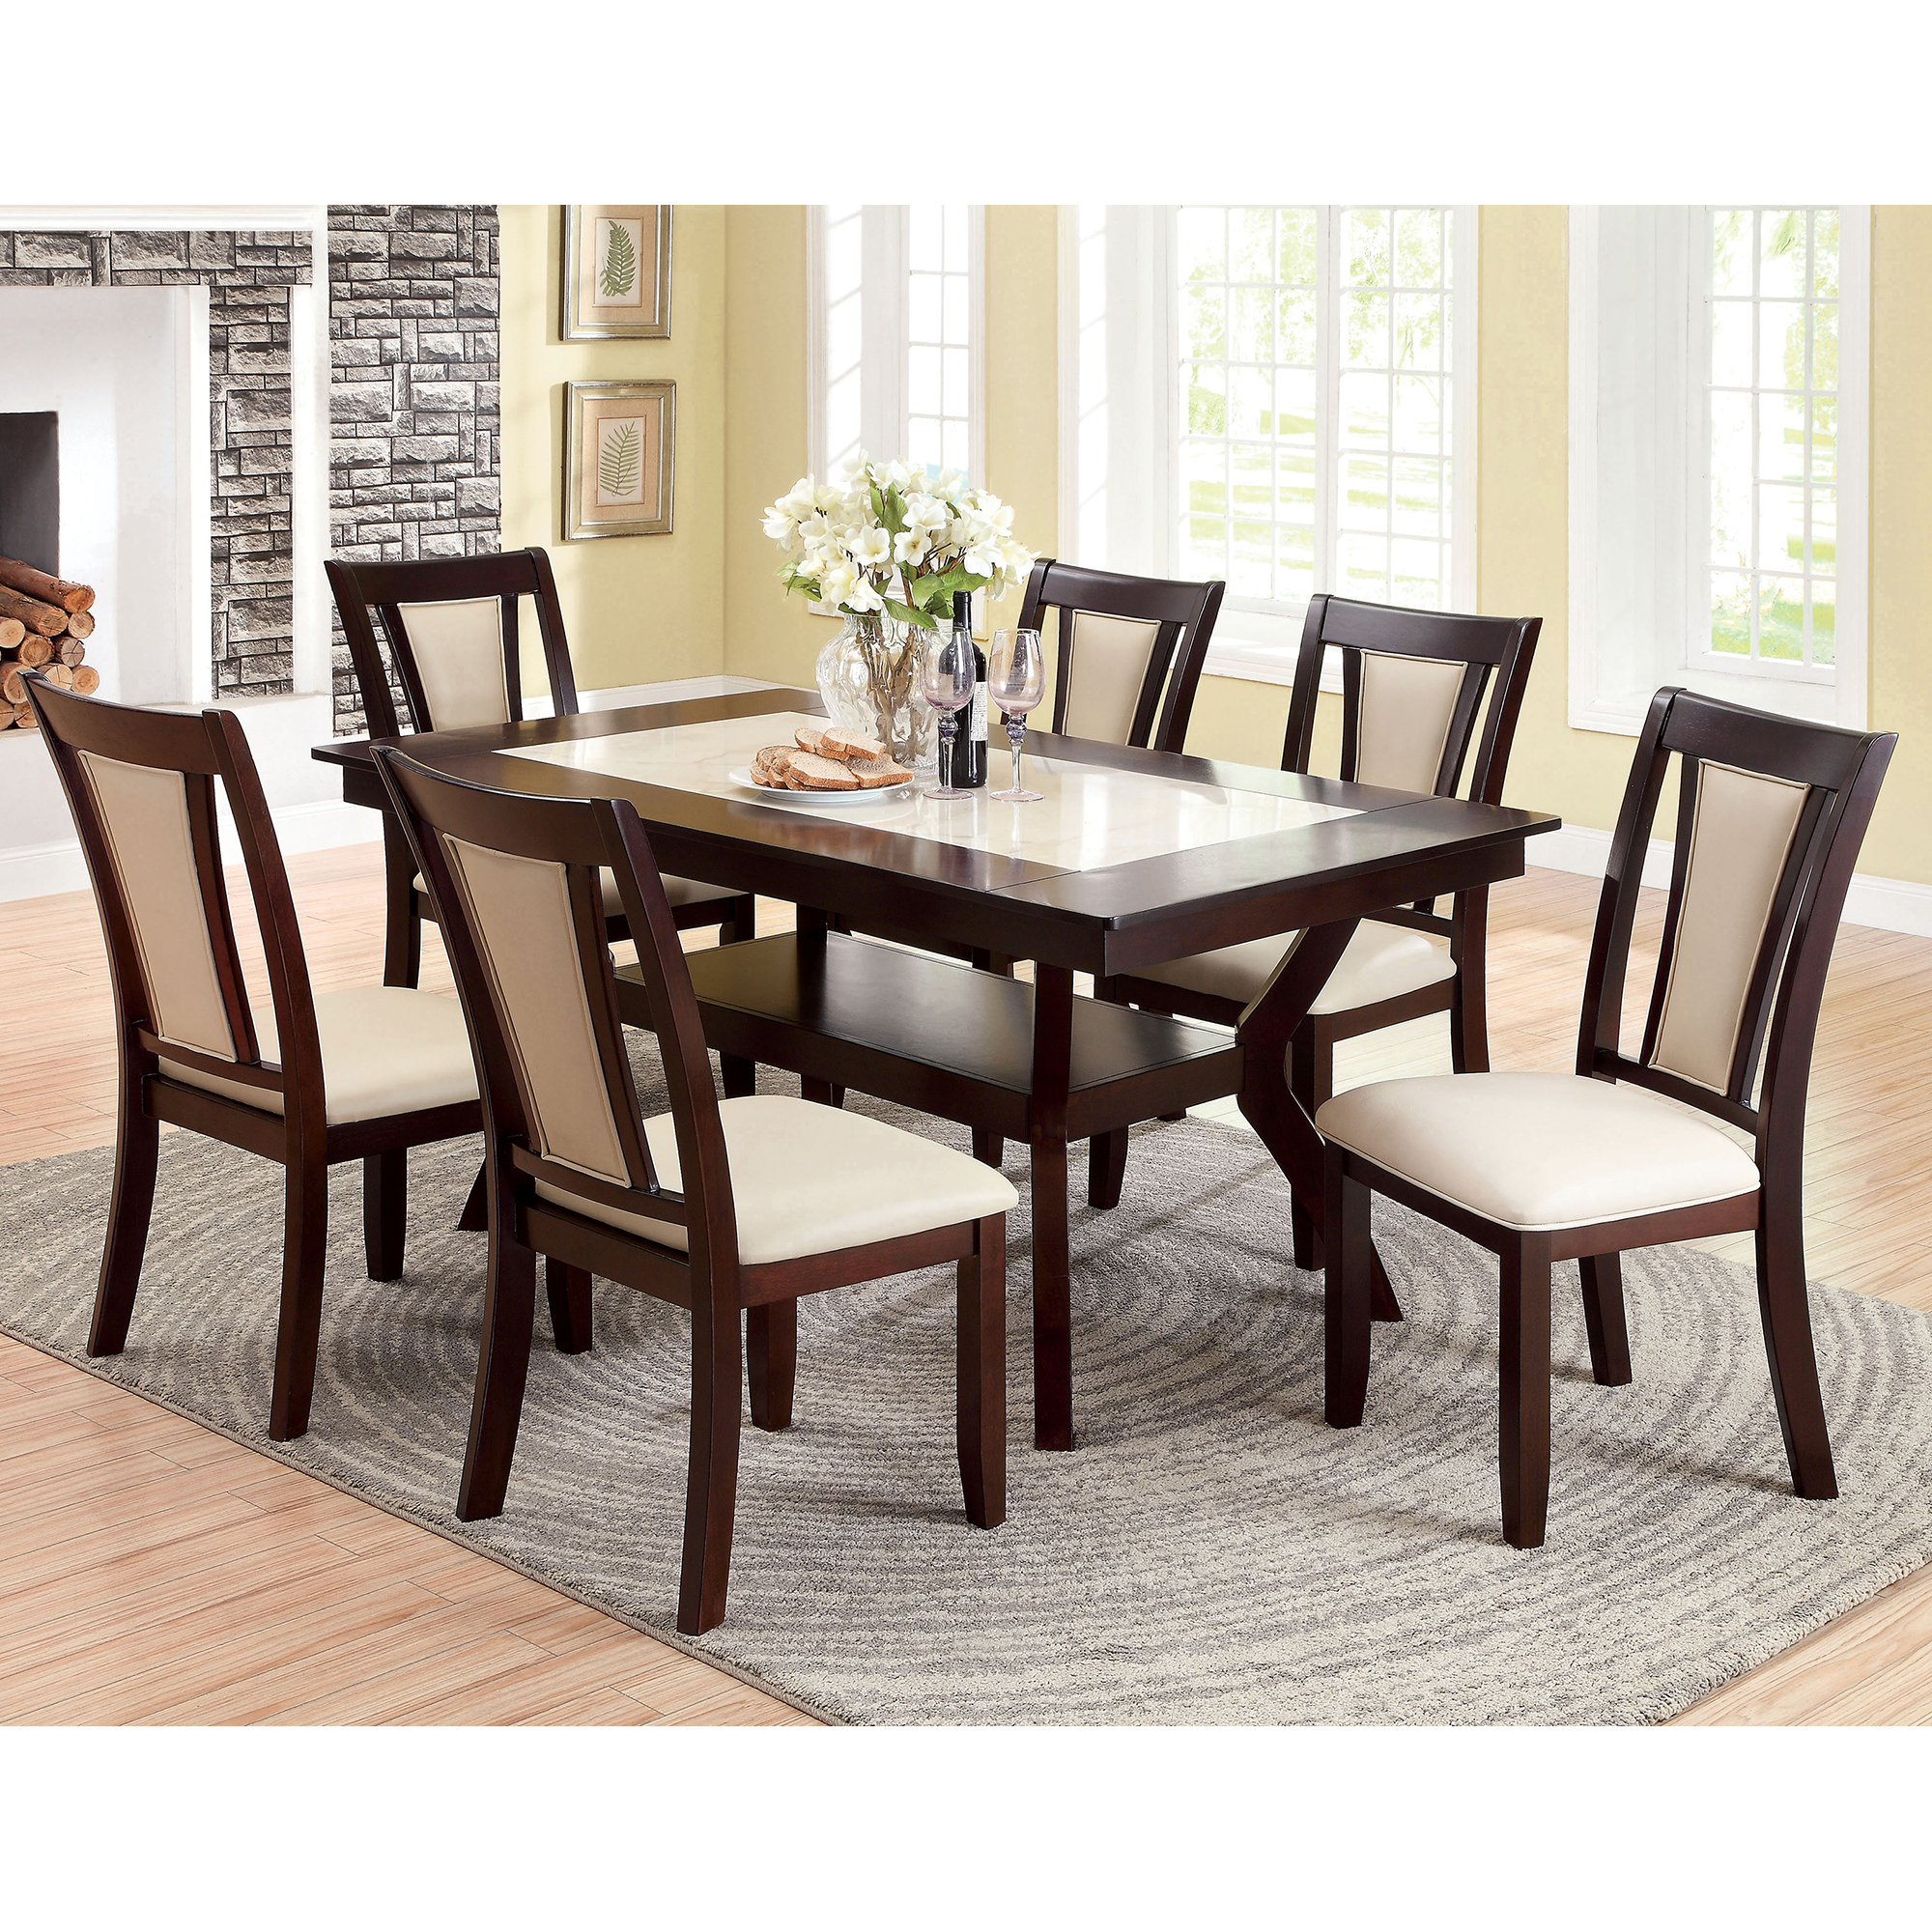 furniture of america mullican 7 piece display top dining table set furniture of america mullican 7 piece display top dining table set dark cherry ivory hayneedle